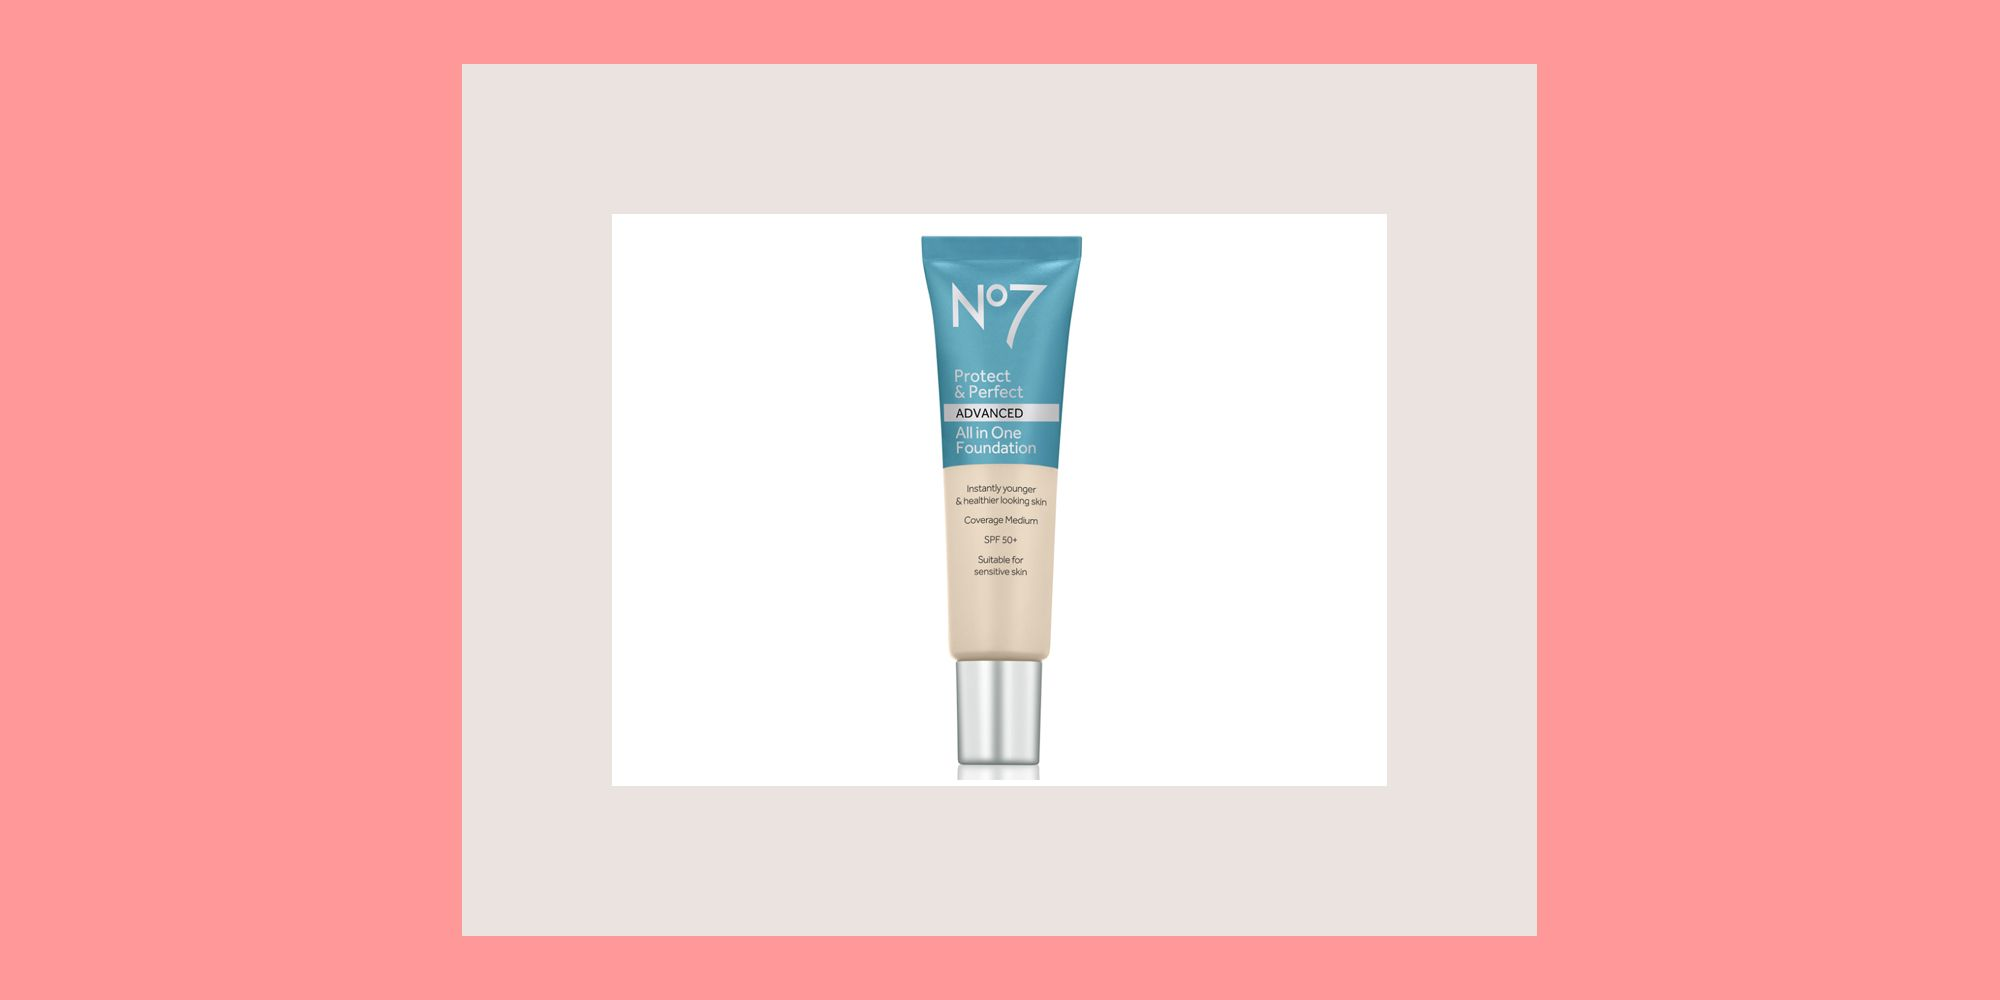 No7's new Protect & Perfect Advanced All in One foundation is selling once every 13 seconds